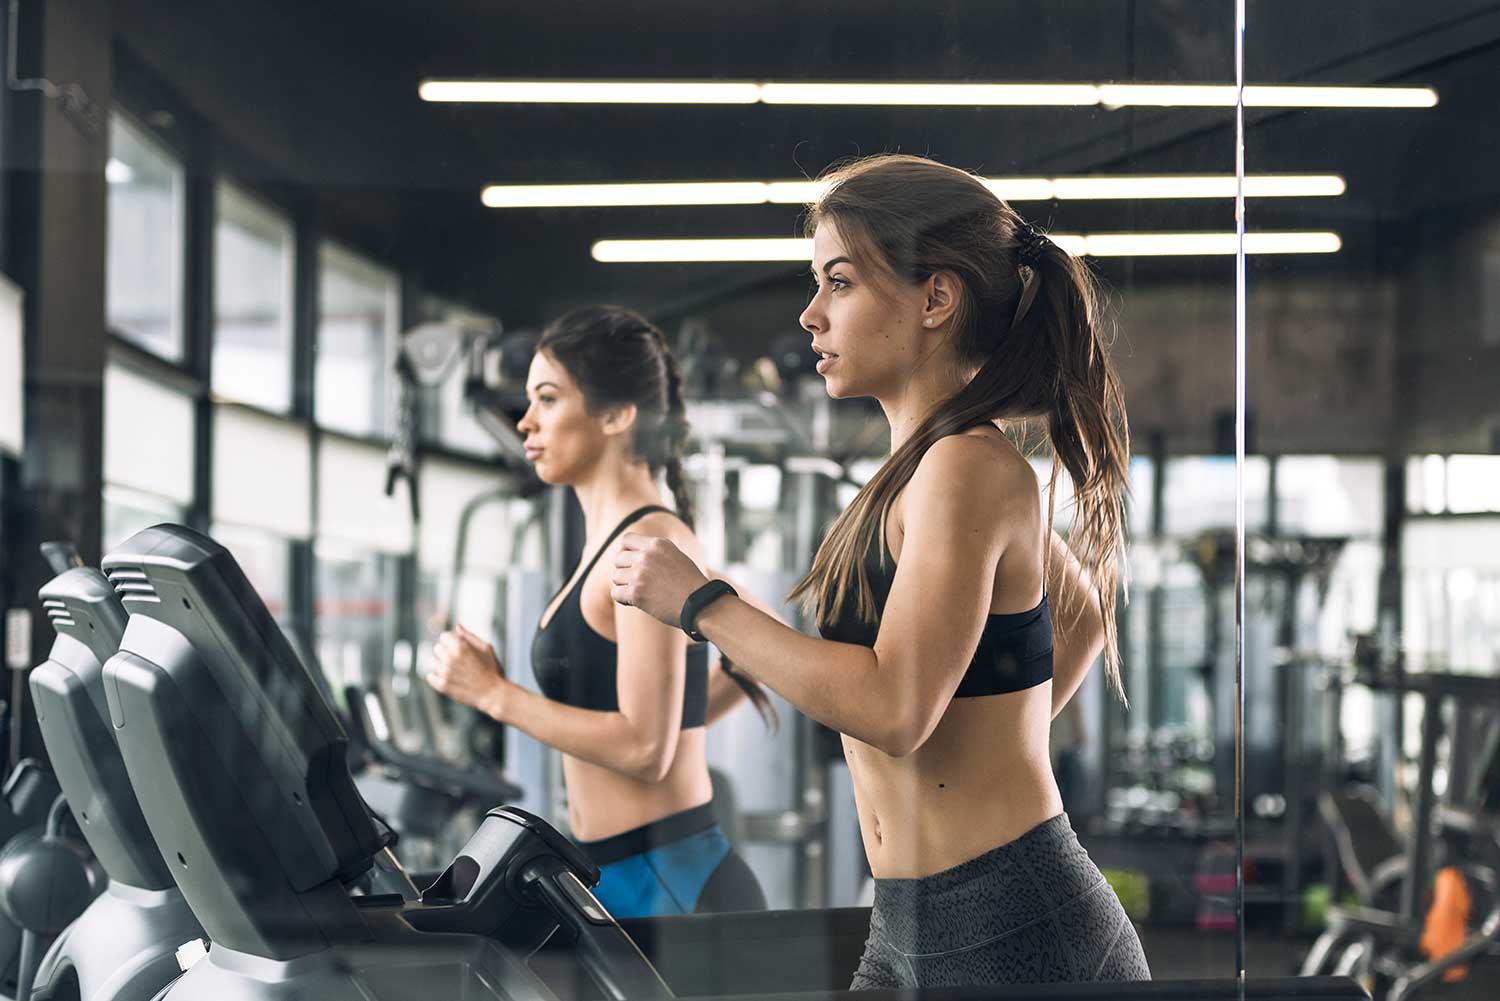 Girls doing a HIIT workout on a treadmill